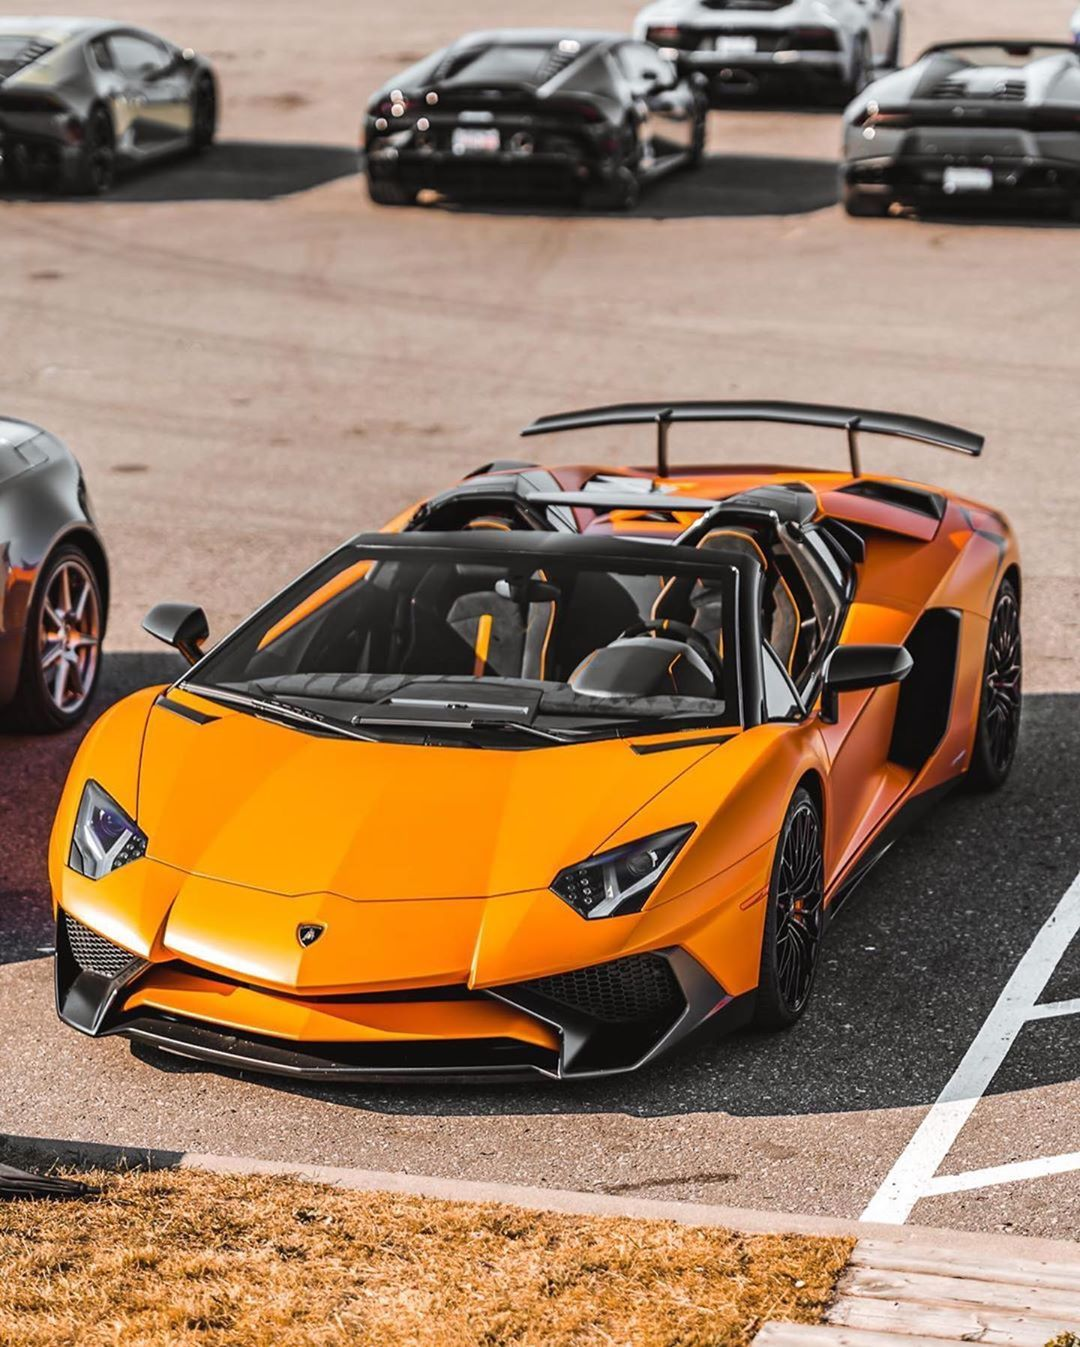 The Aventador Lover S Instagram Profile Post Repost Therealabd I Know You Special Girl Cause I Know Too Many Own In 2020 Lambo Lamborghini Cars Super Cars